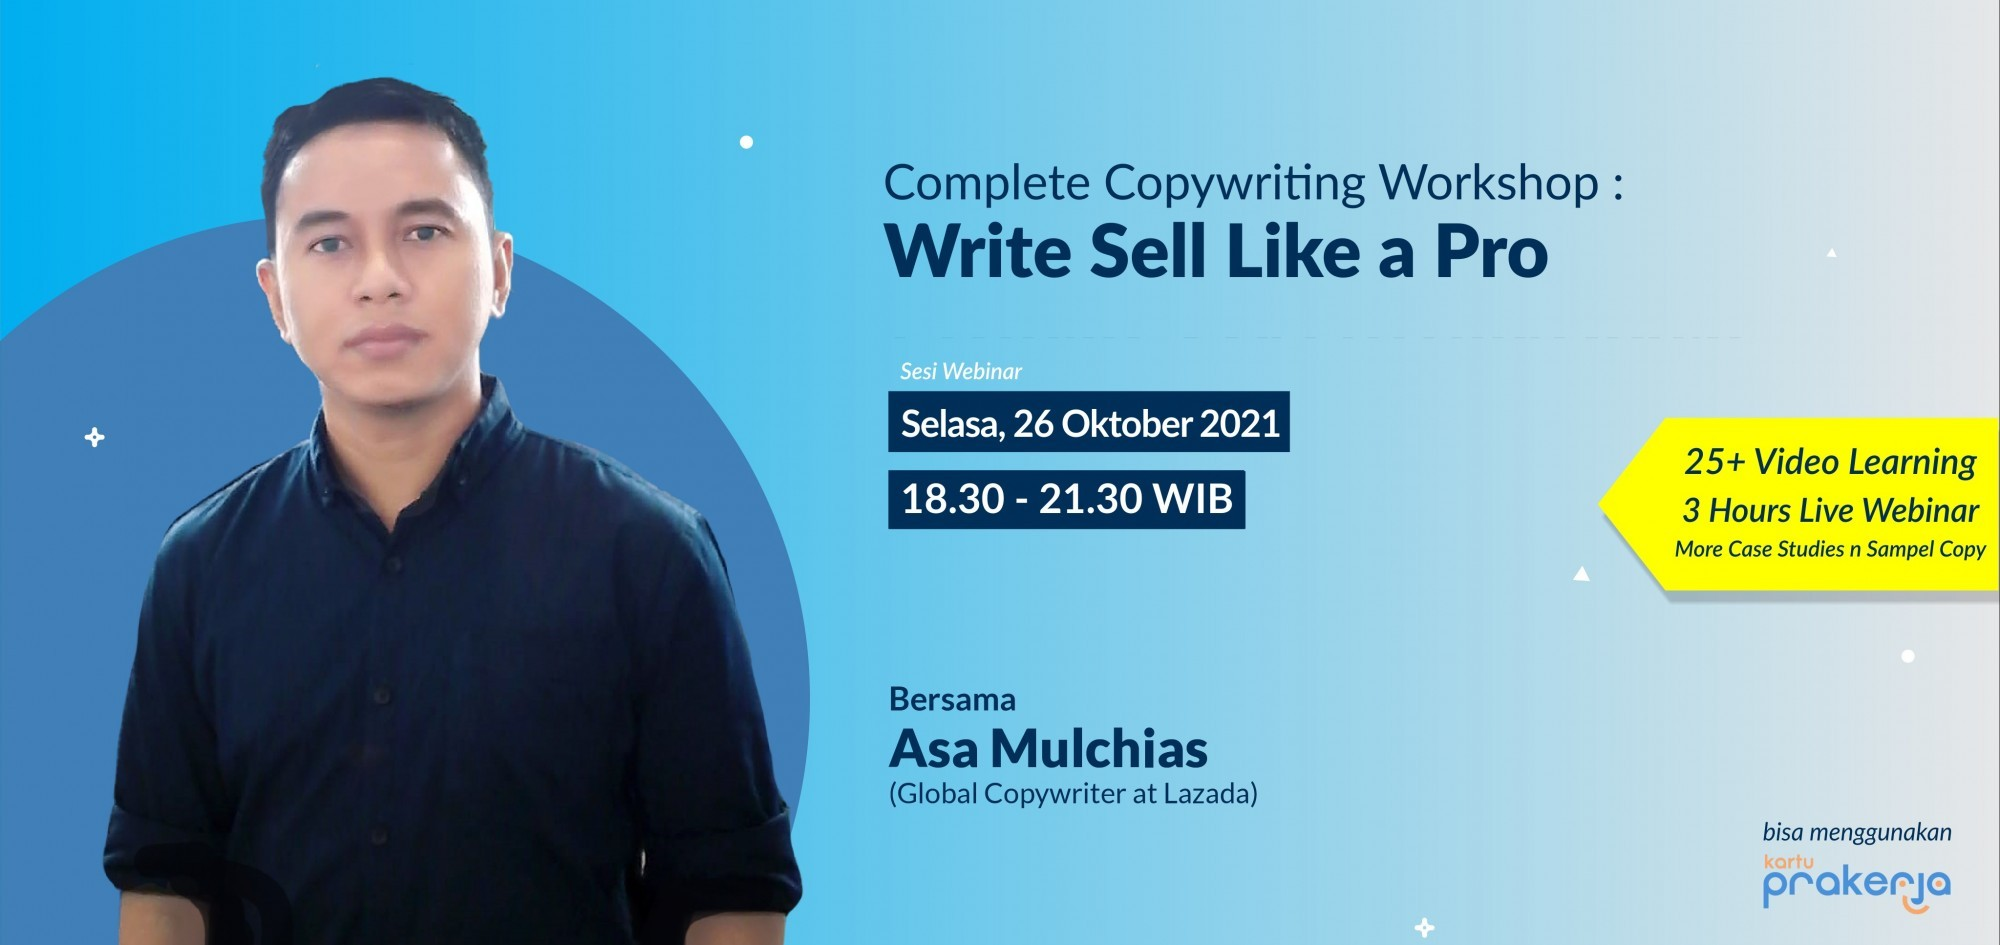 Complete Copywriting Workshop: Write Sell Like a Pro